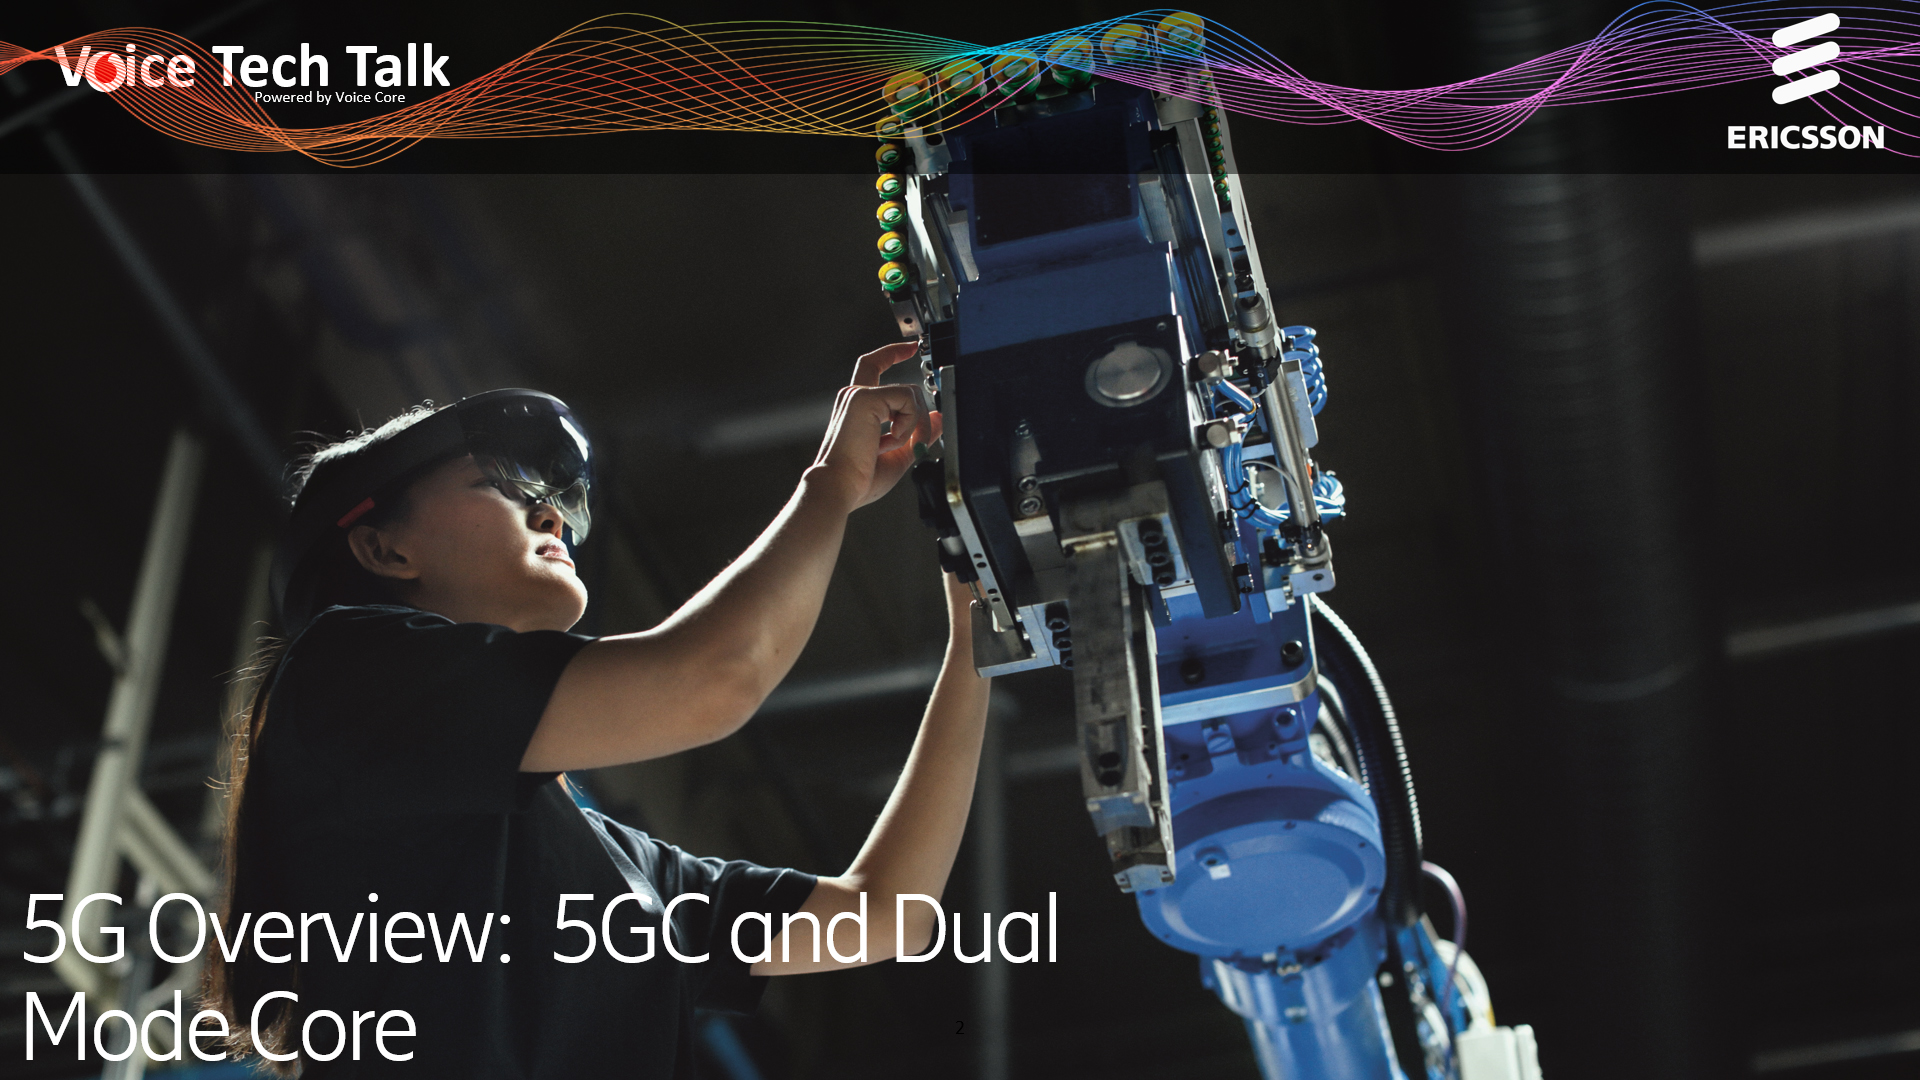 5G Overview:  5GC and Dual Mode Core